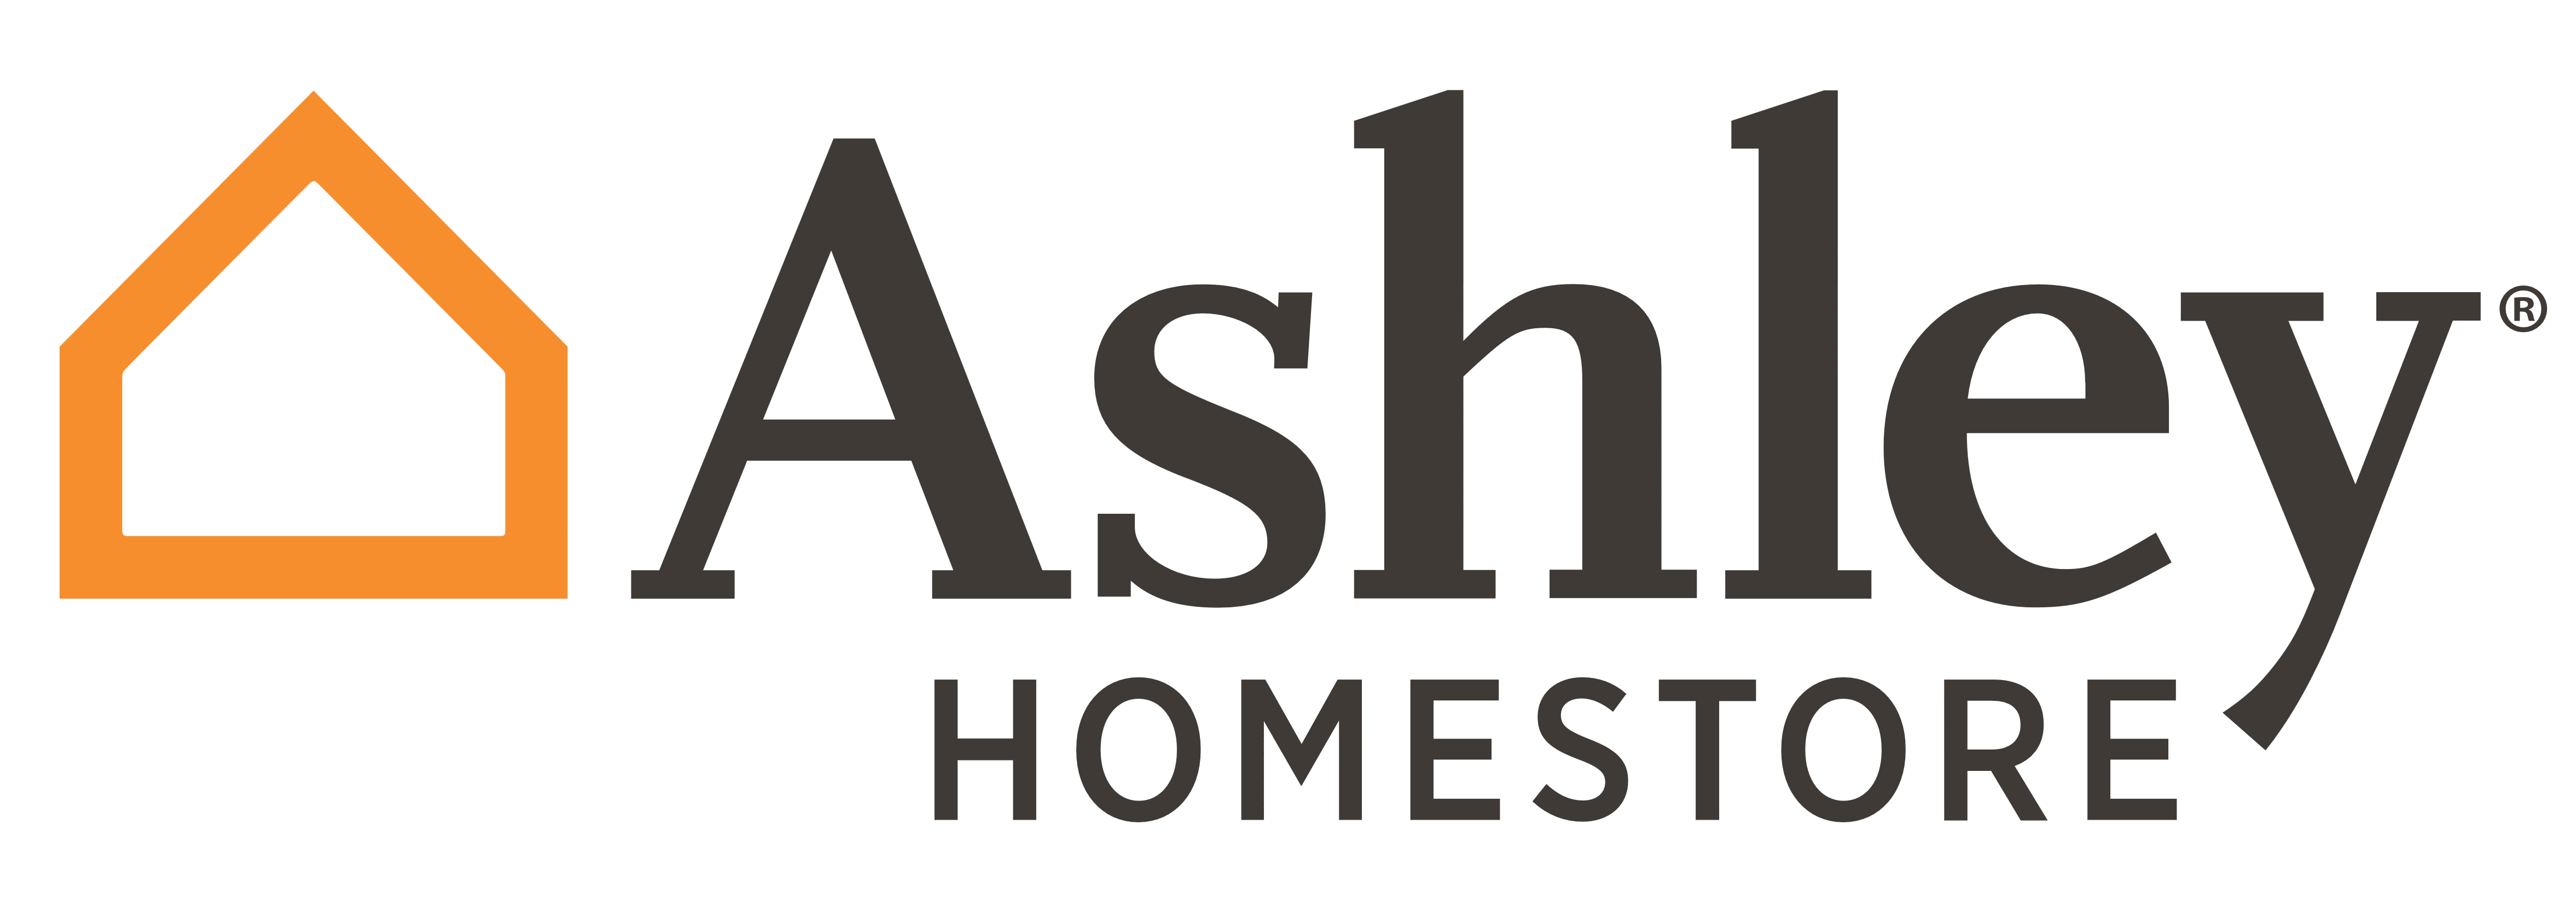 Ashley Homestore.